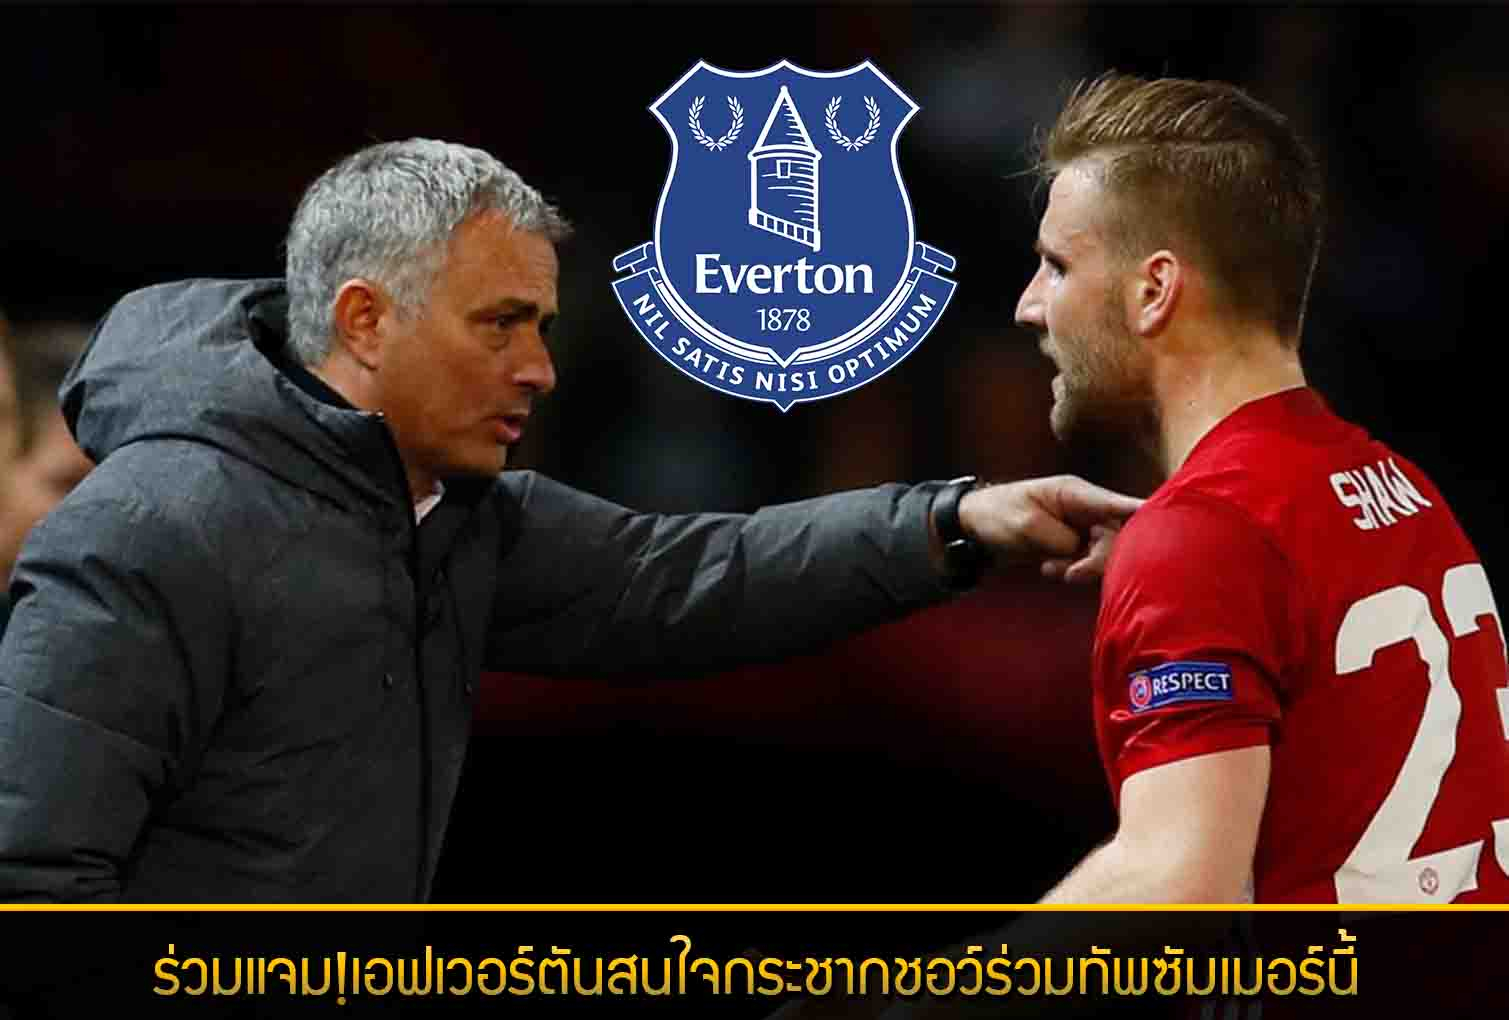 mourinho-shaw-everton-sight